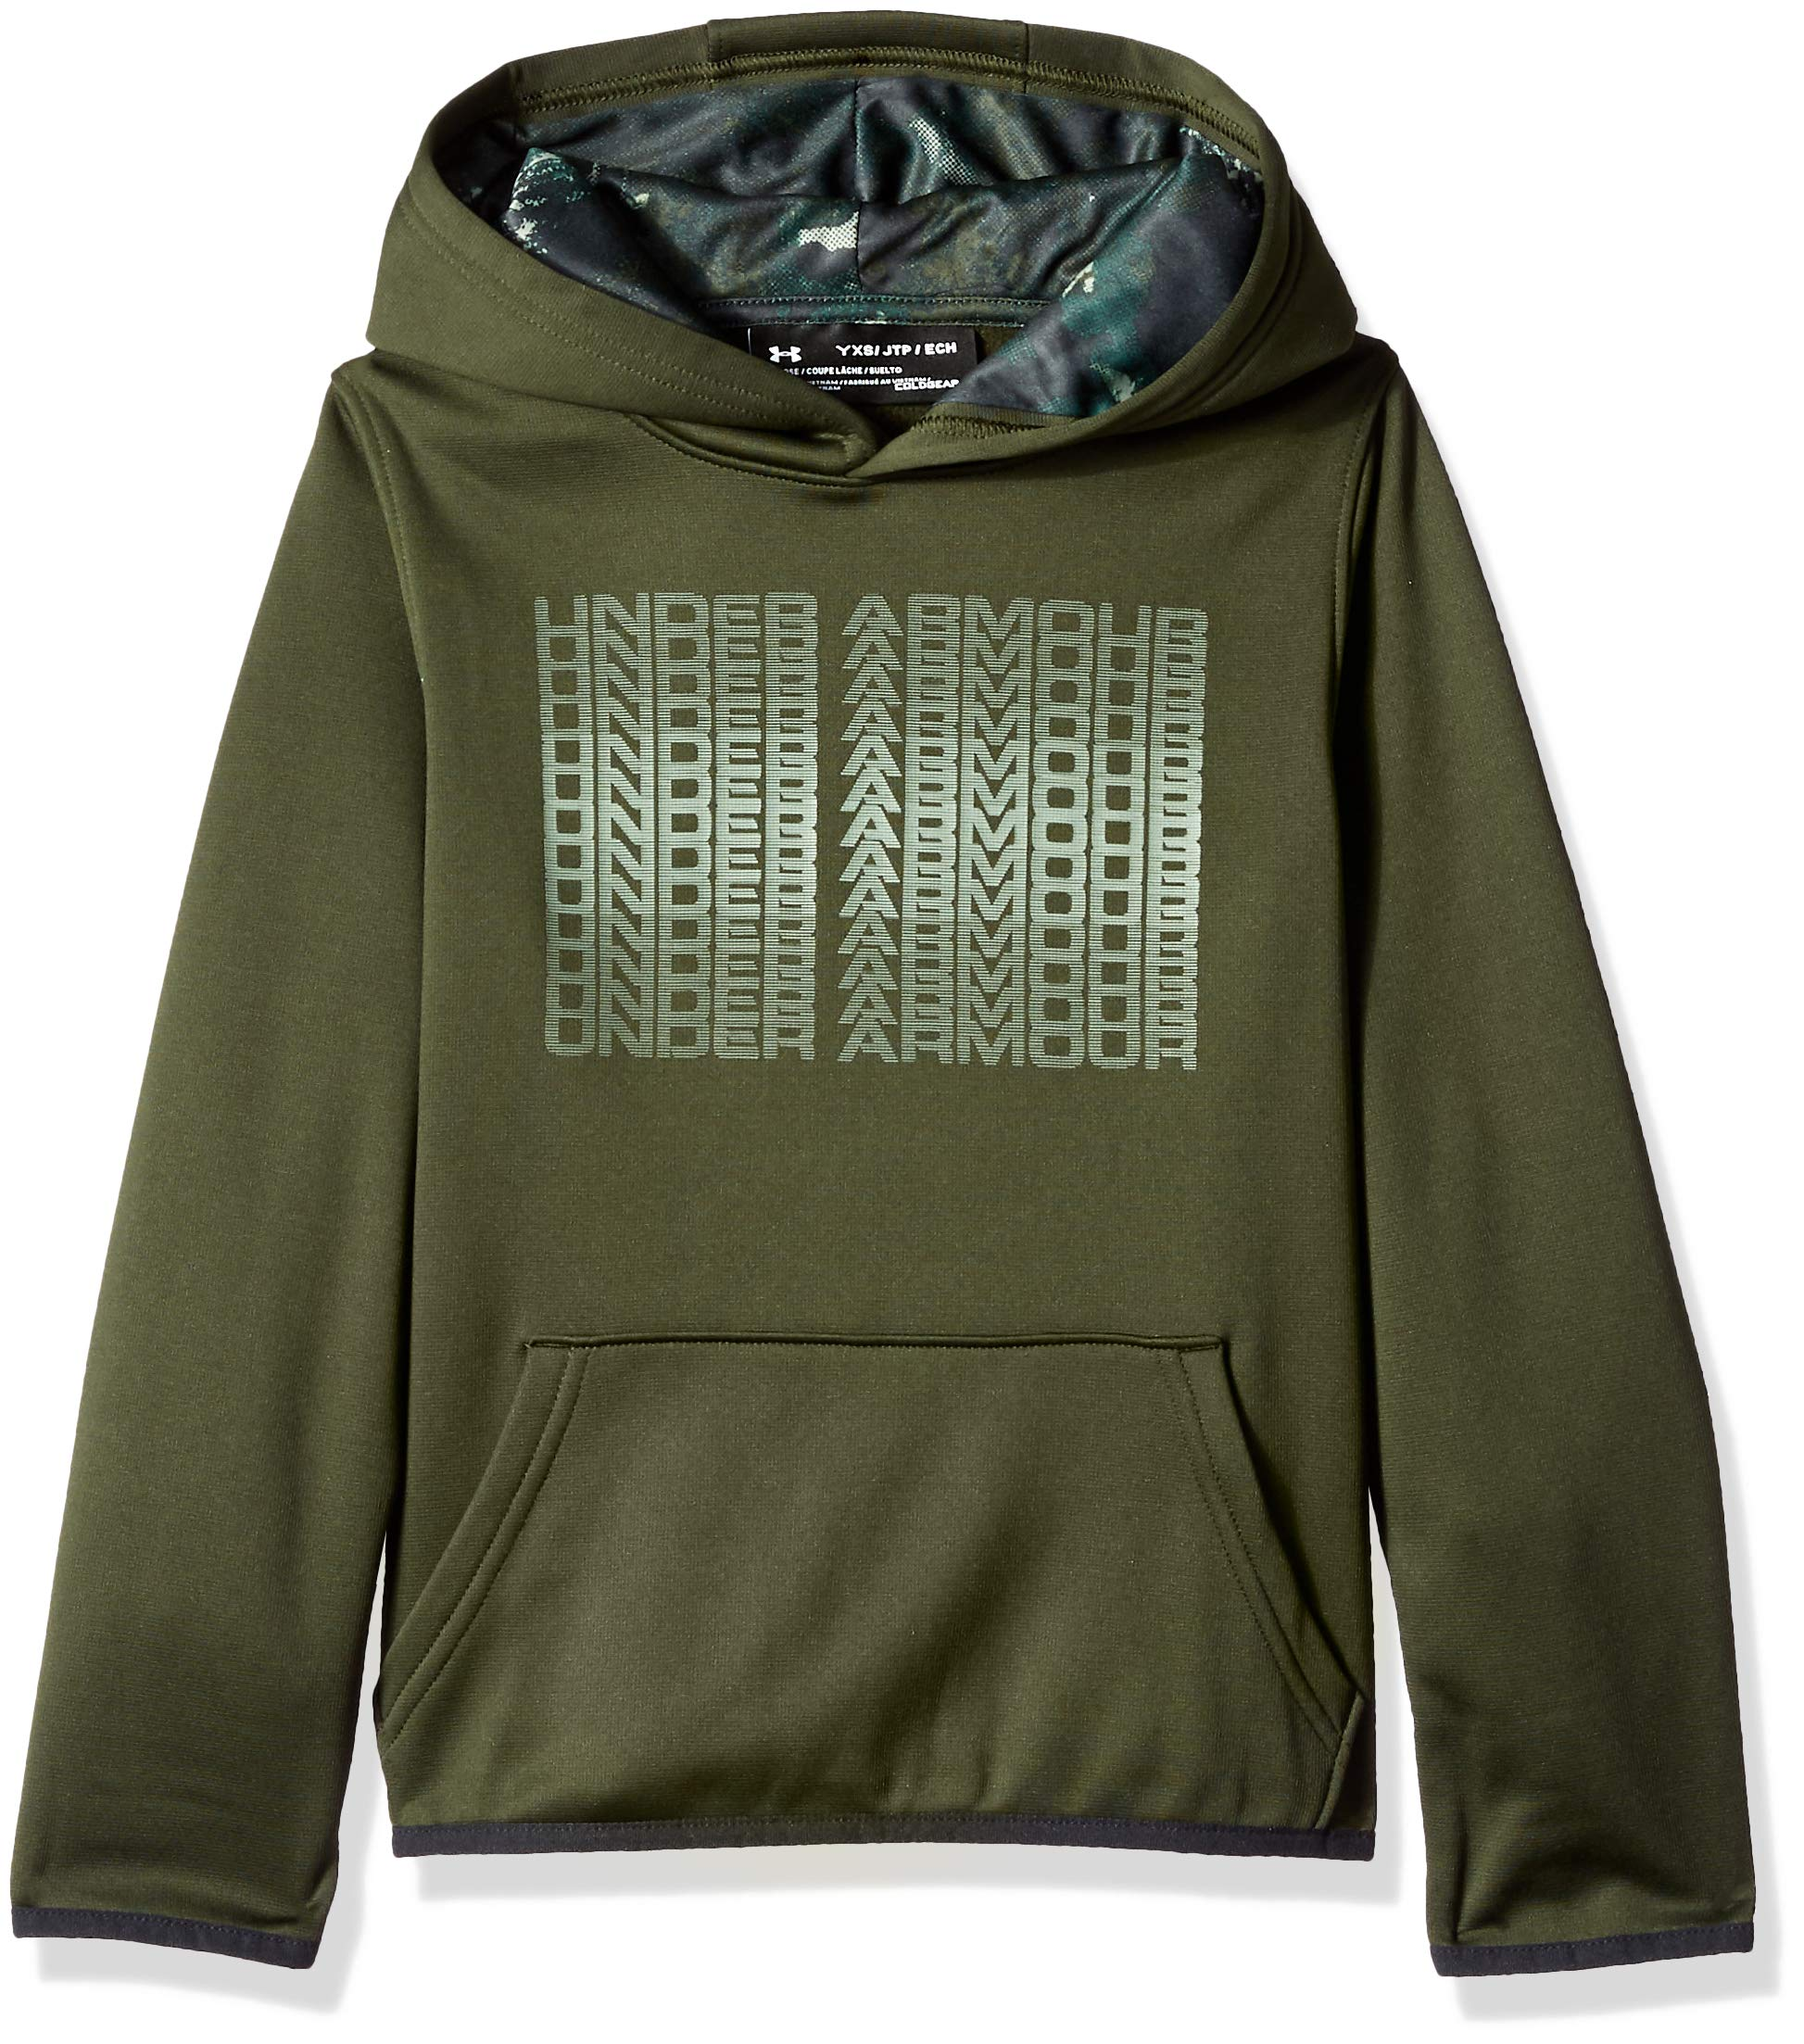 Under Armour Boys' Armour Fleece Branded Hoodie, Artillery Green (357)/Moss Green, Youth Large by Under Armour